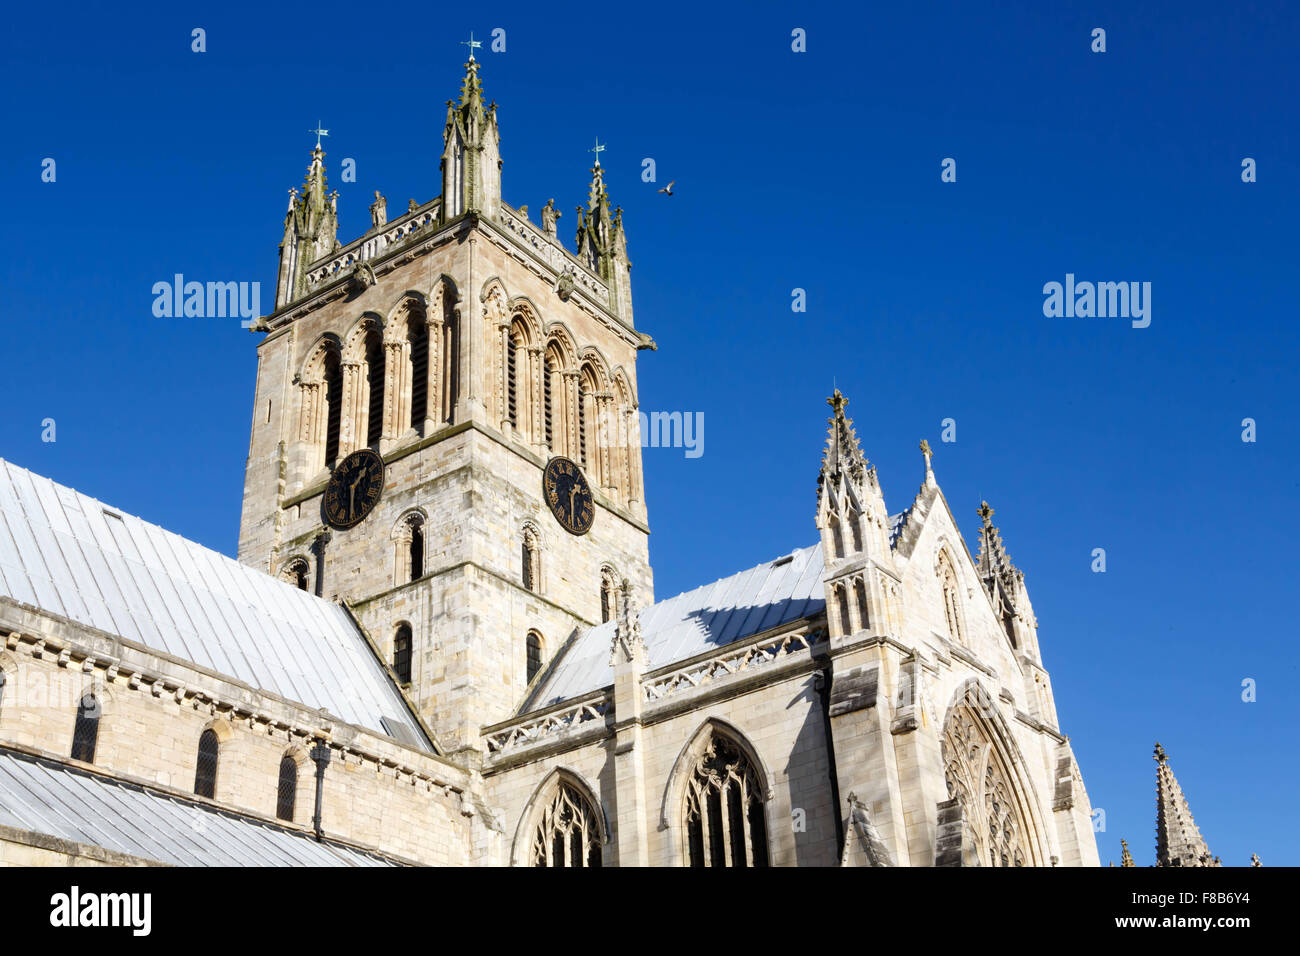 The south side of  Selby Abbey showing the tower against a clear blue sky background - Stock Image